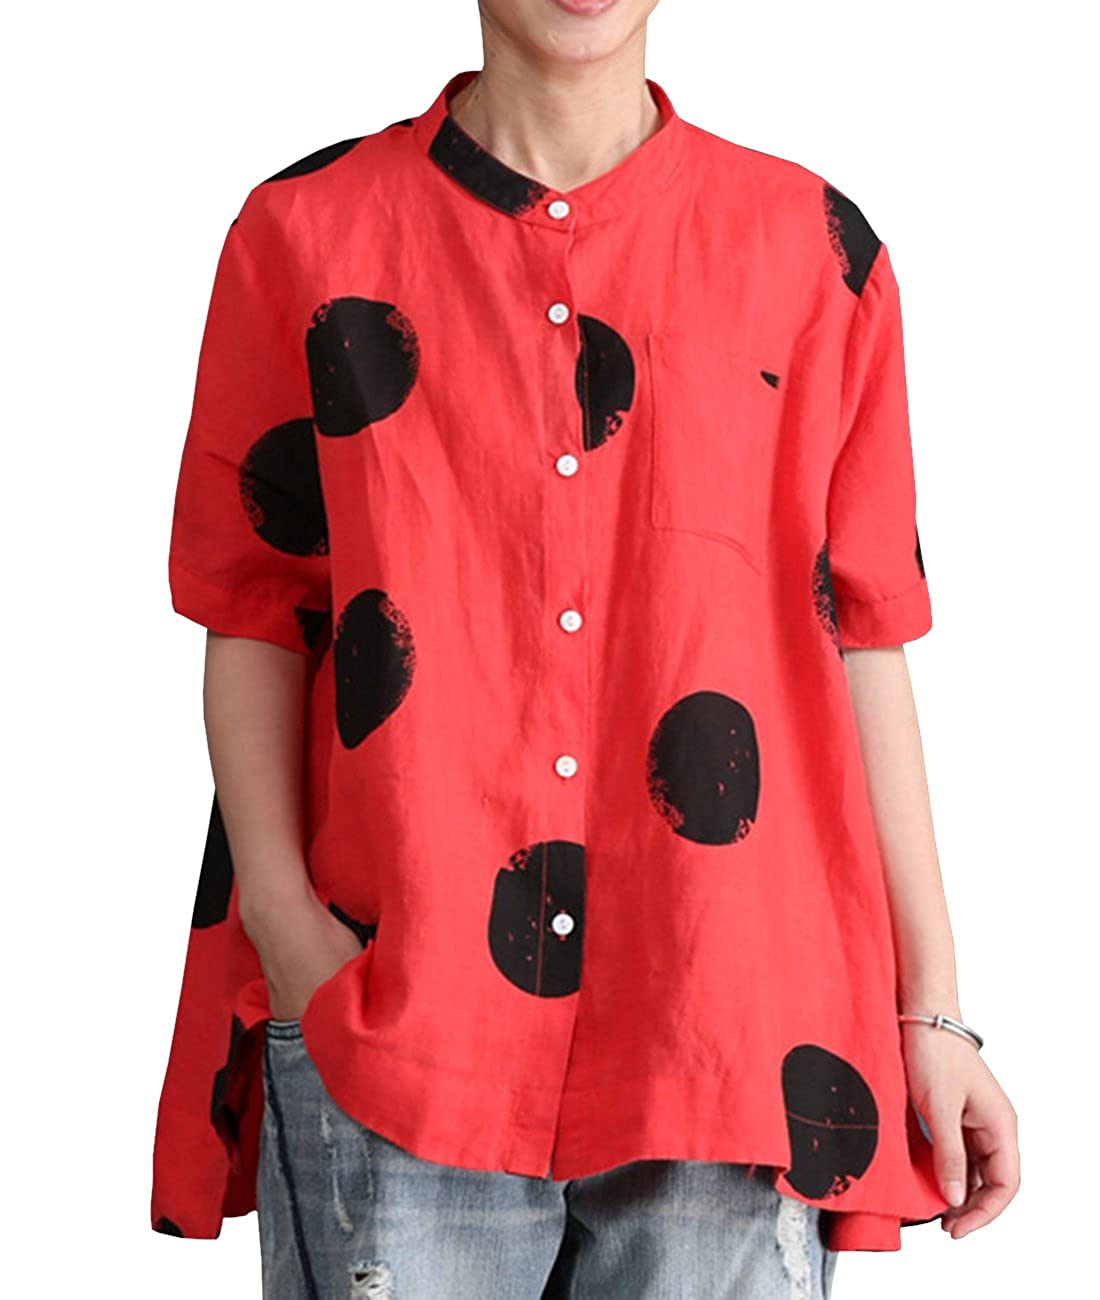 Qr5typ1 Red YESNO E01 Women Casual Loose Fit Embroidered Blouse Shirt Lapel ButtonDown Shirt 100% Linen Raglan Sleeve